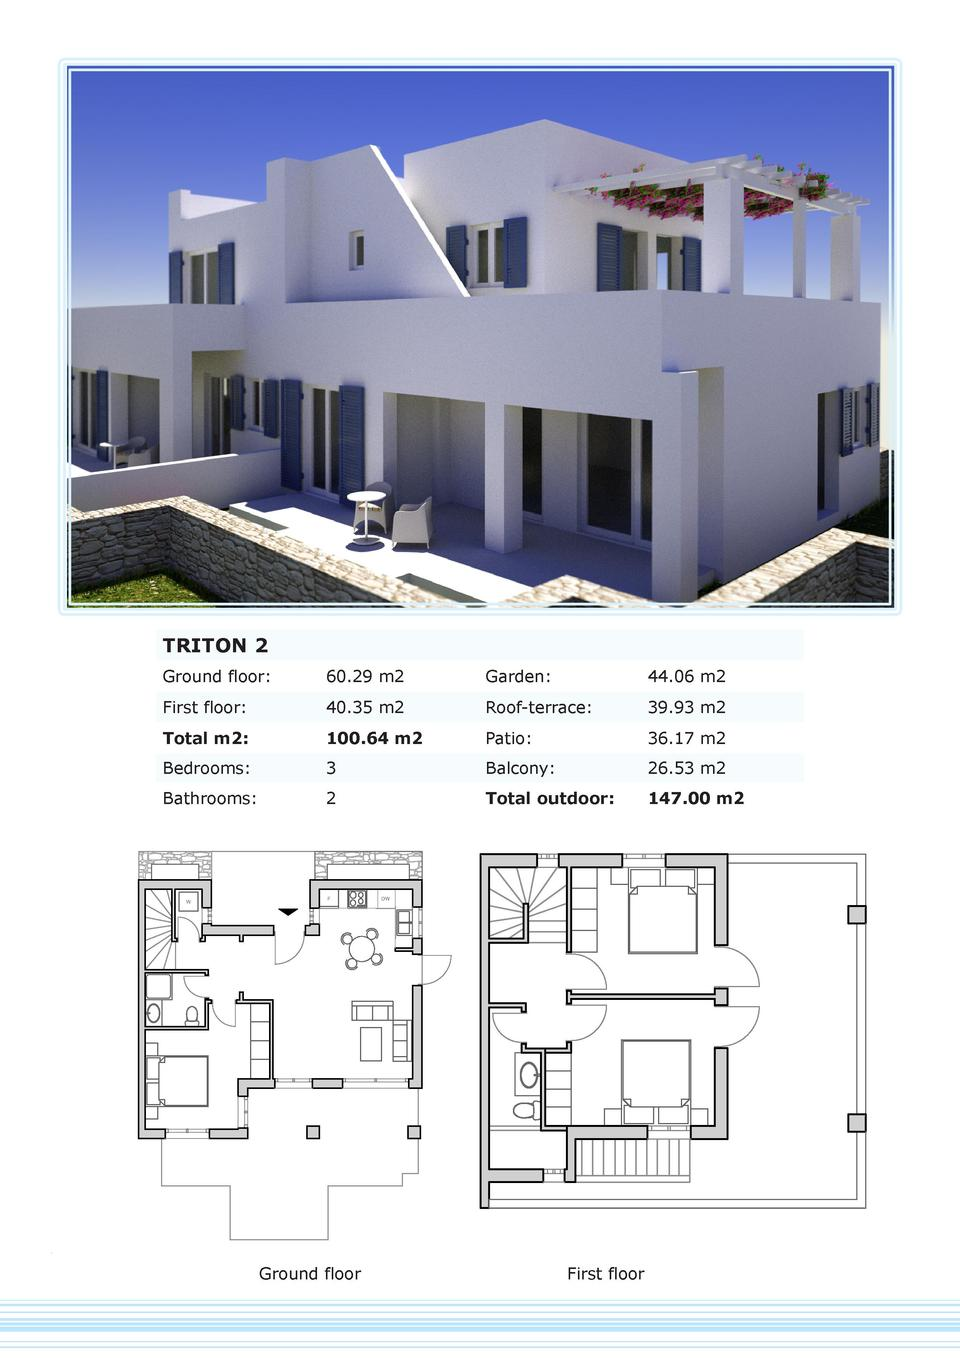 TRITON 2 Ground floor   60.29 m2  Garden   44.06 m2  First floor   40.35 m2  Roof-terrace   39.93 m2  Total m2   100.64 m2...